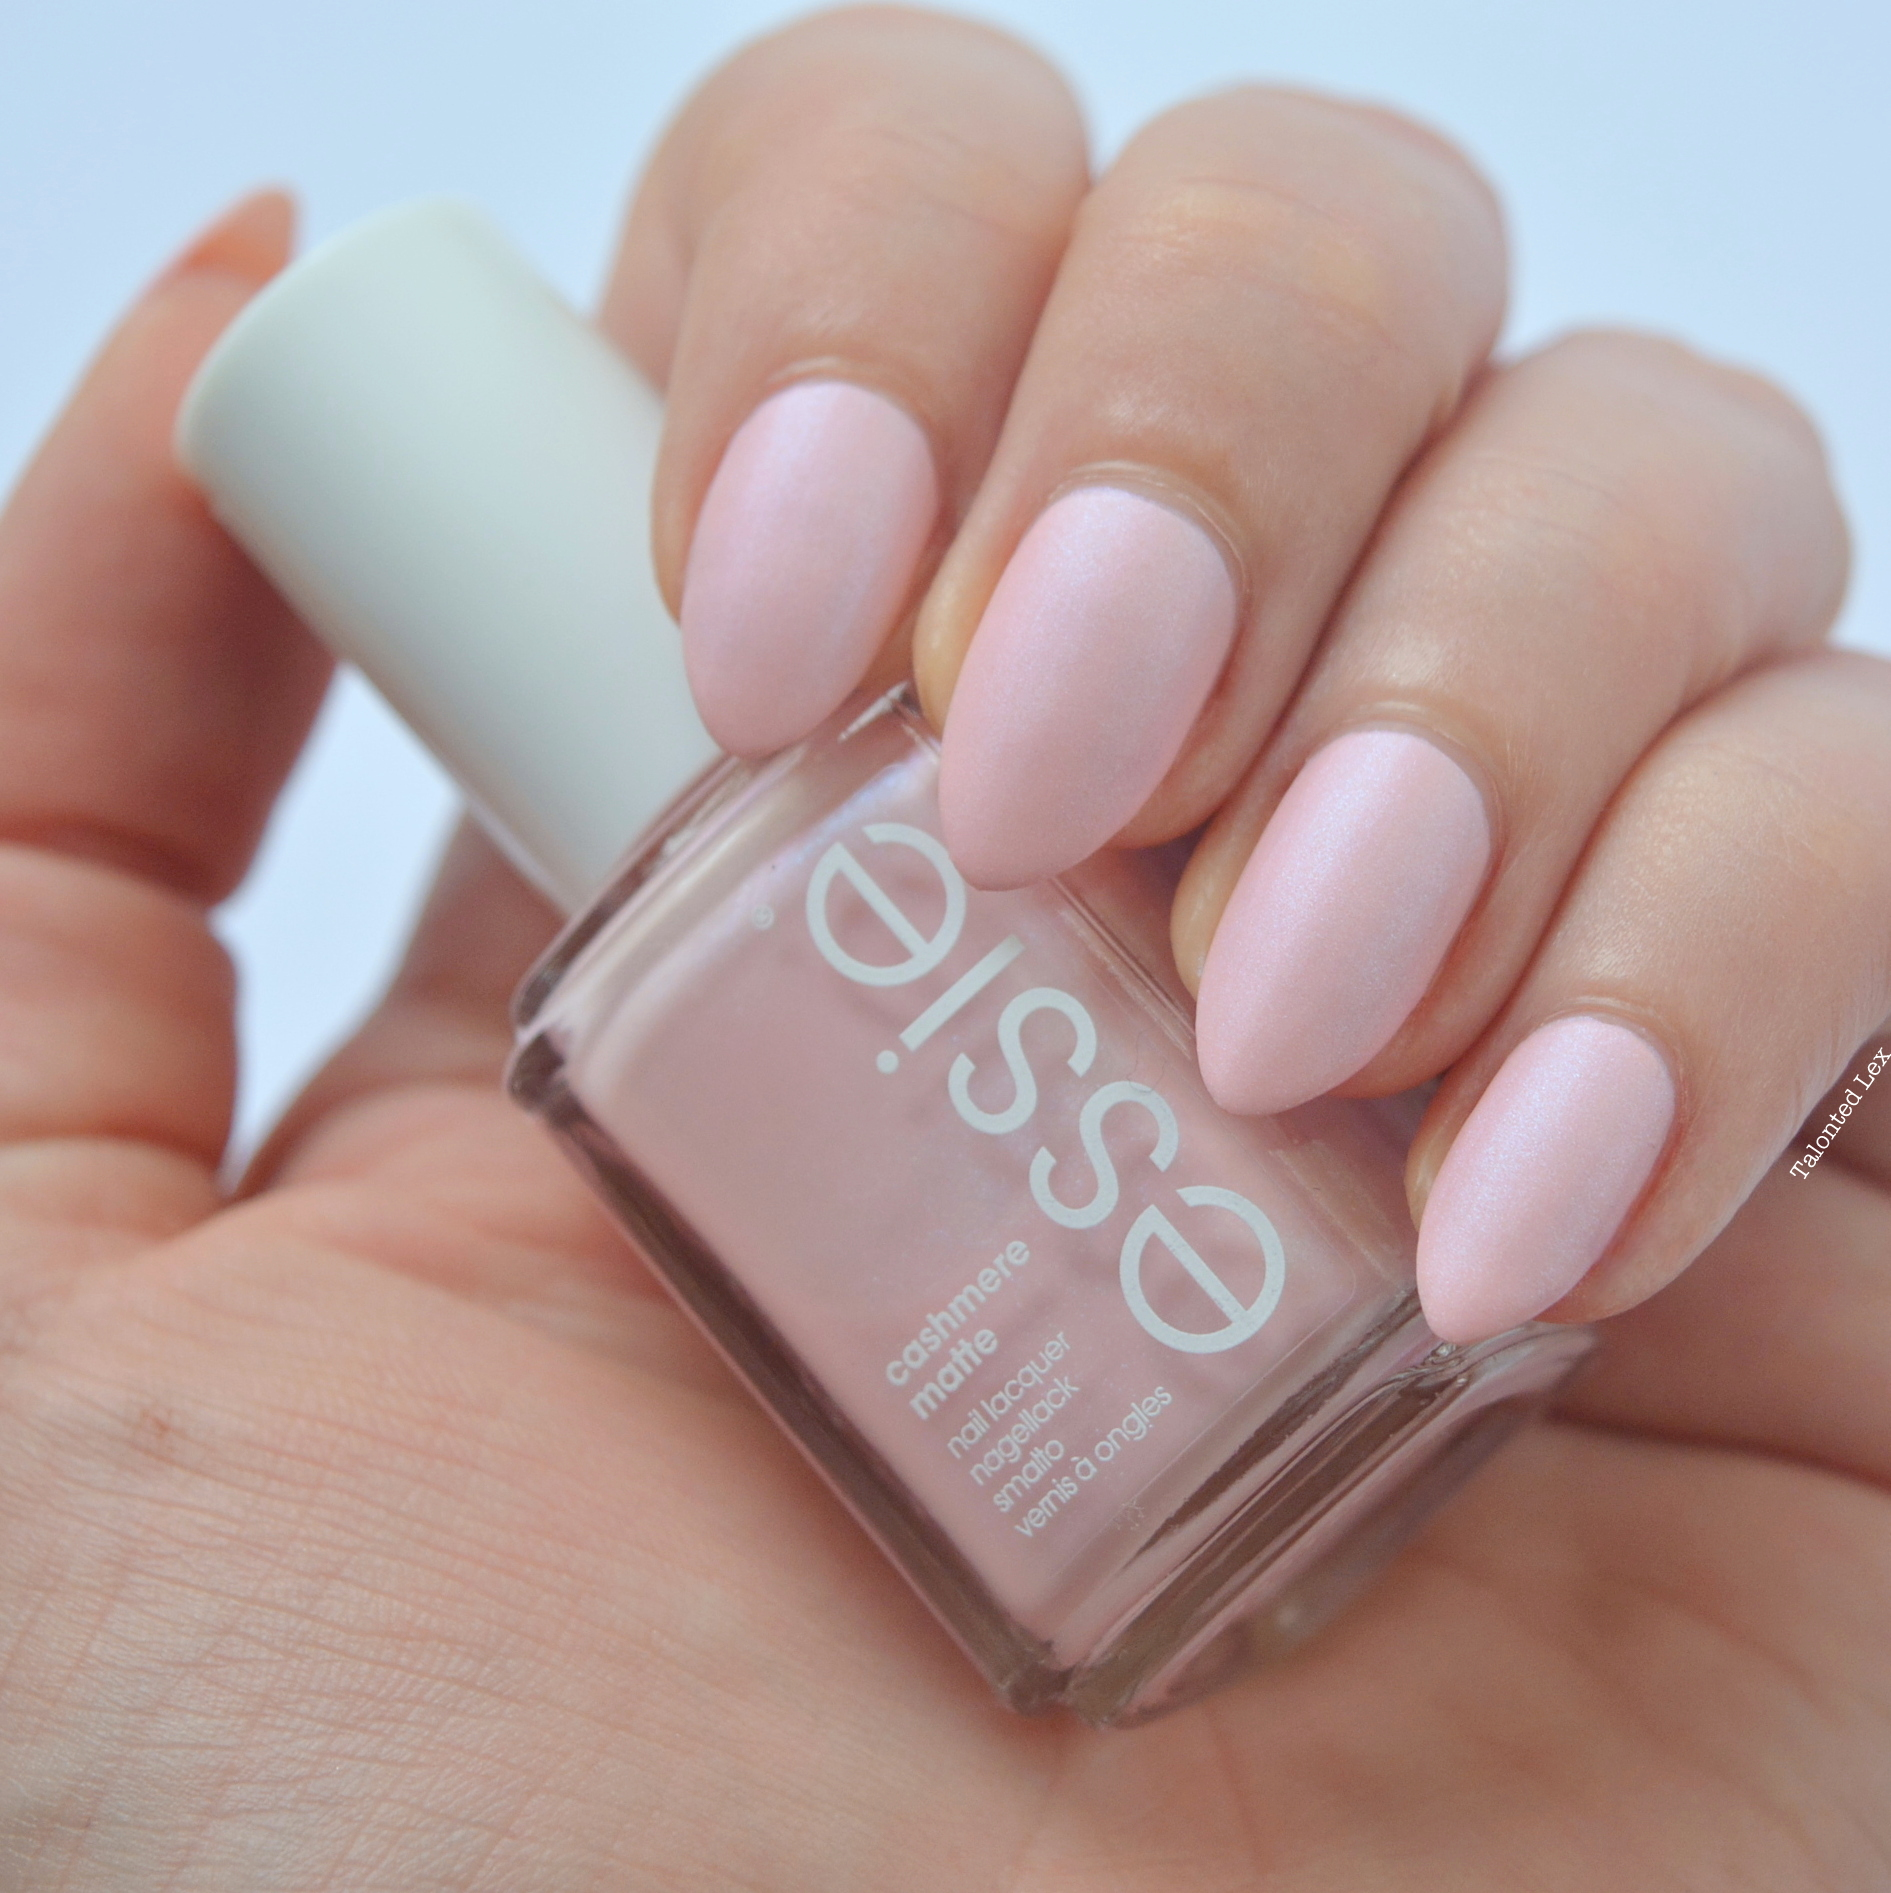 essie-Cashmere-Collection-matte-review-swatches-just-stitched-talonted-lex-4